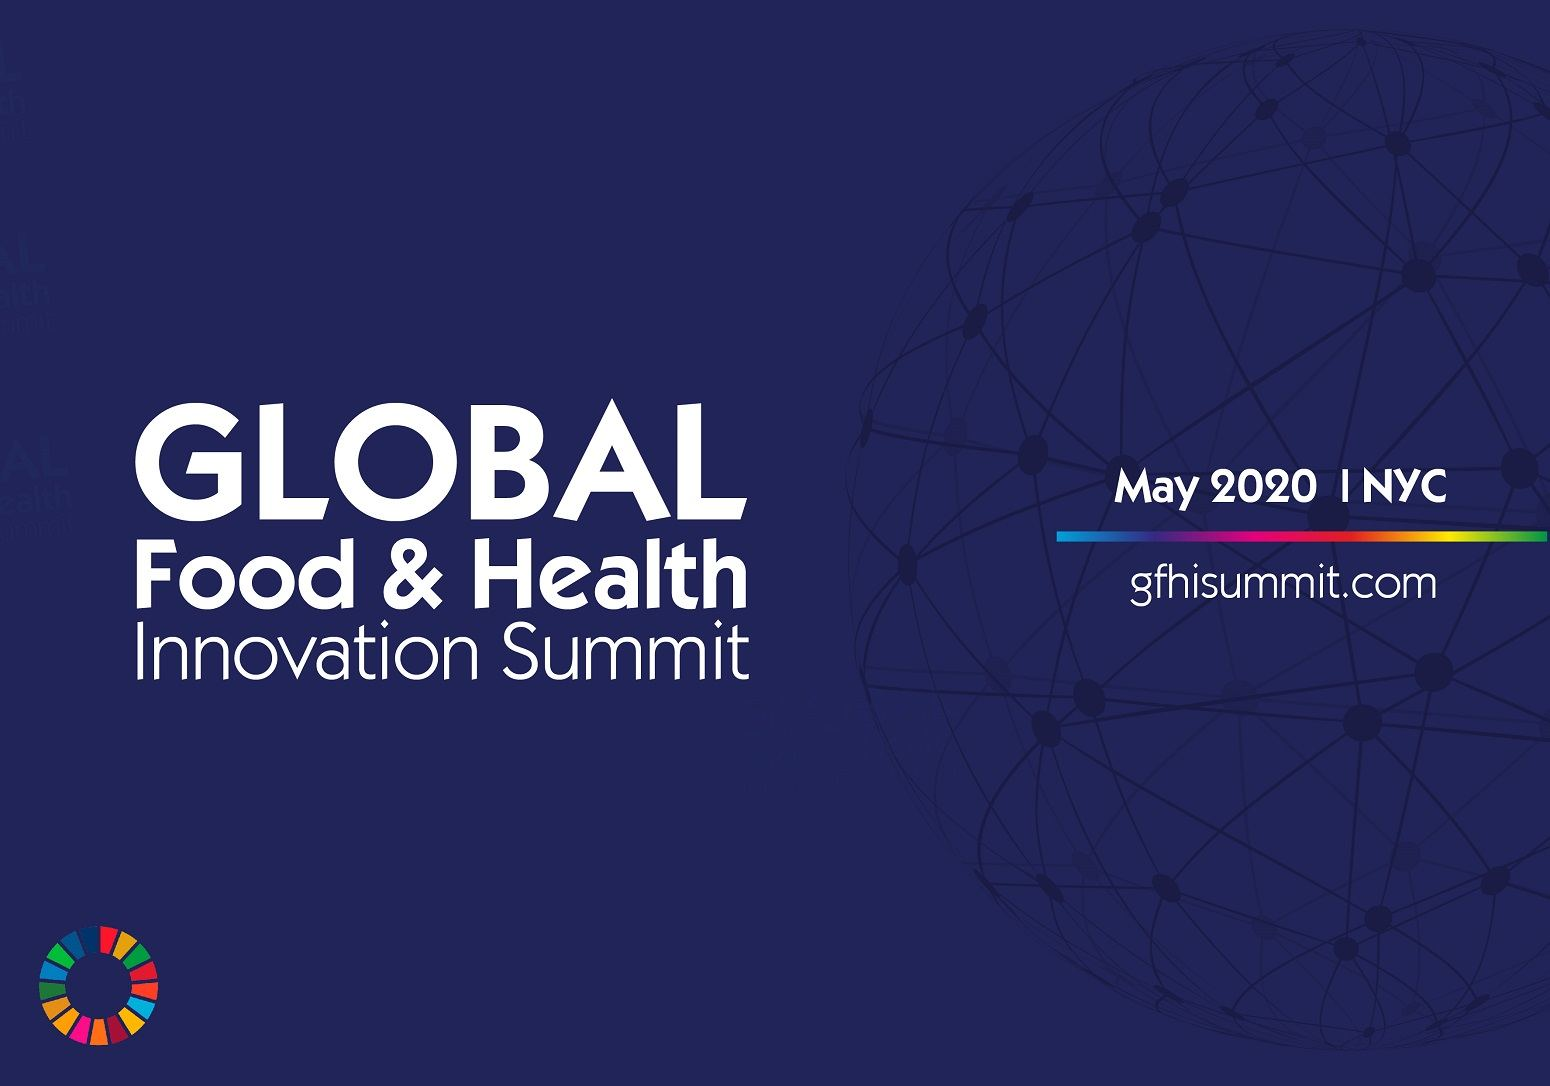 Global Food & Health Innovation Summit-5-15-20-NY